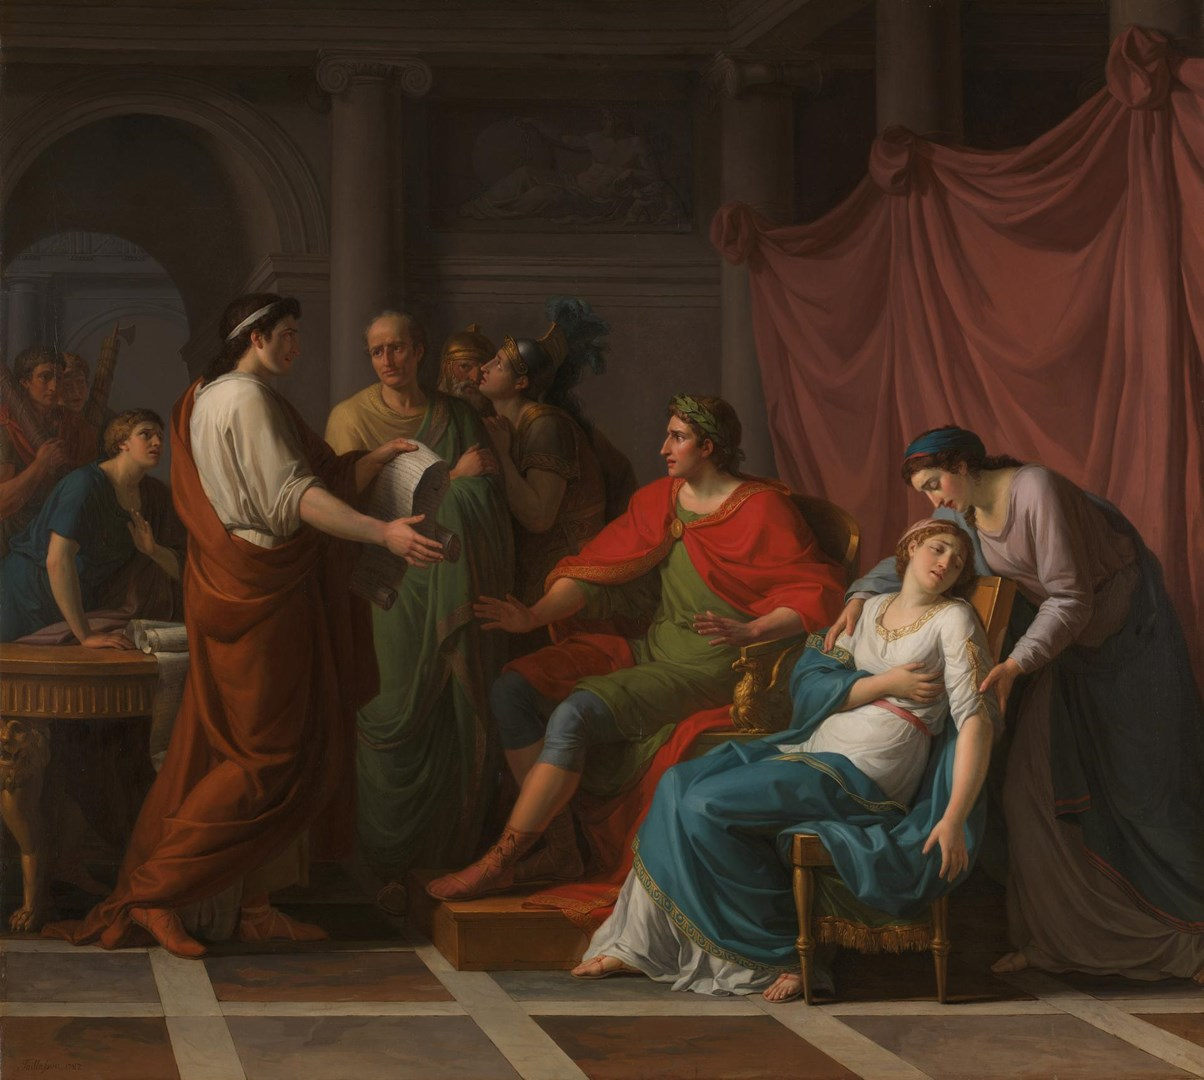 Virgil reading the Aeneid to Augustus and Octavia by Jean-Joseph Taillasson